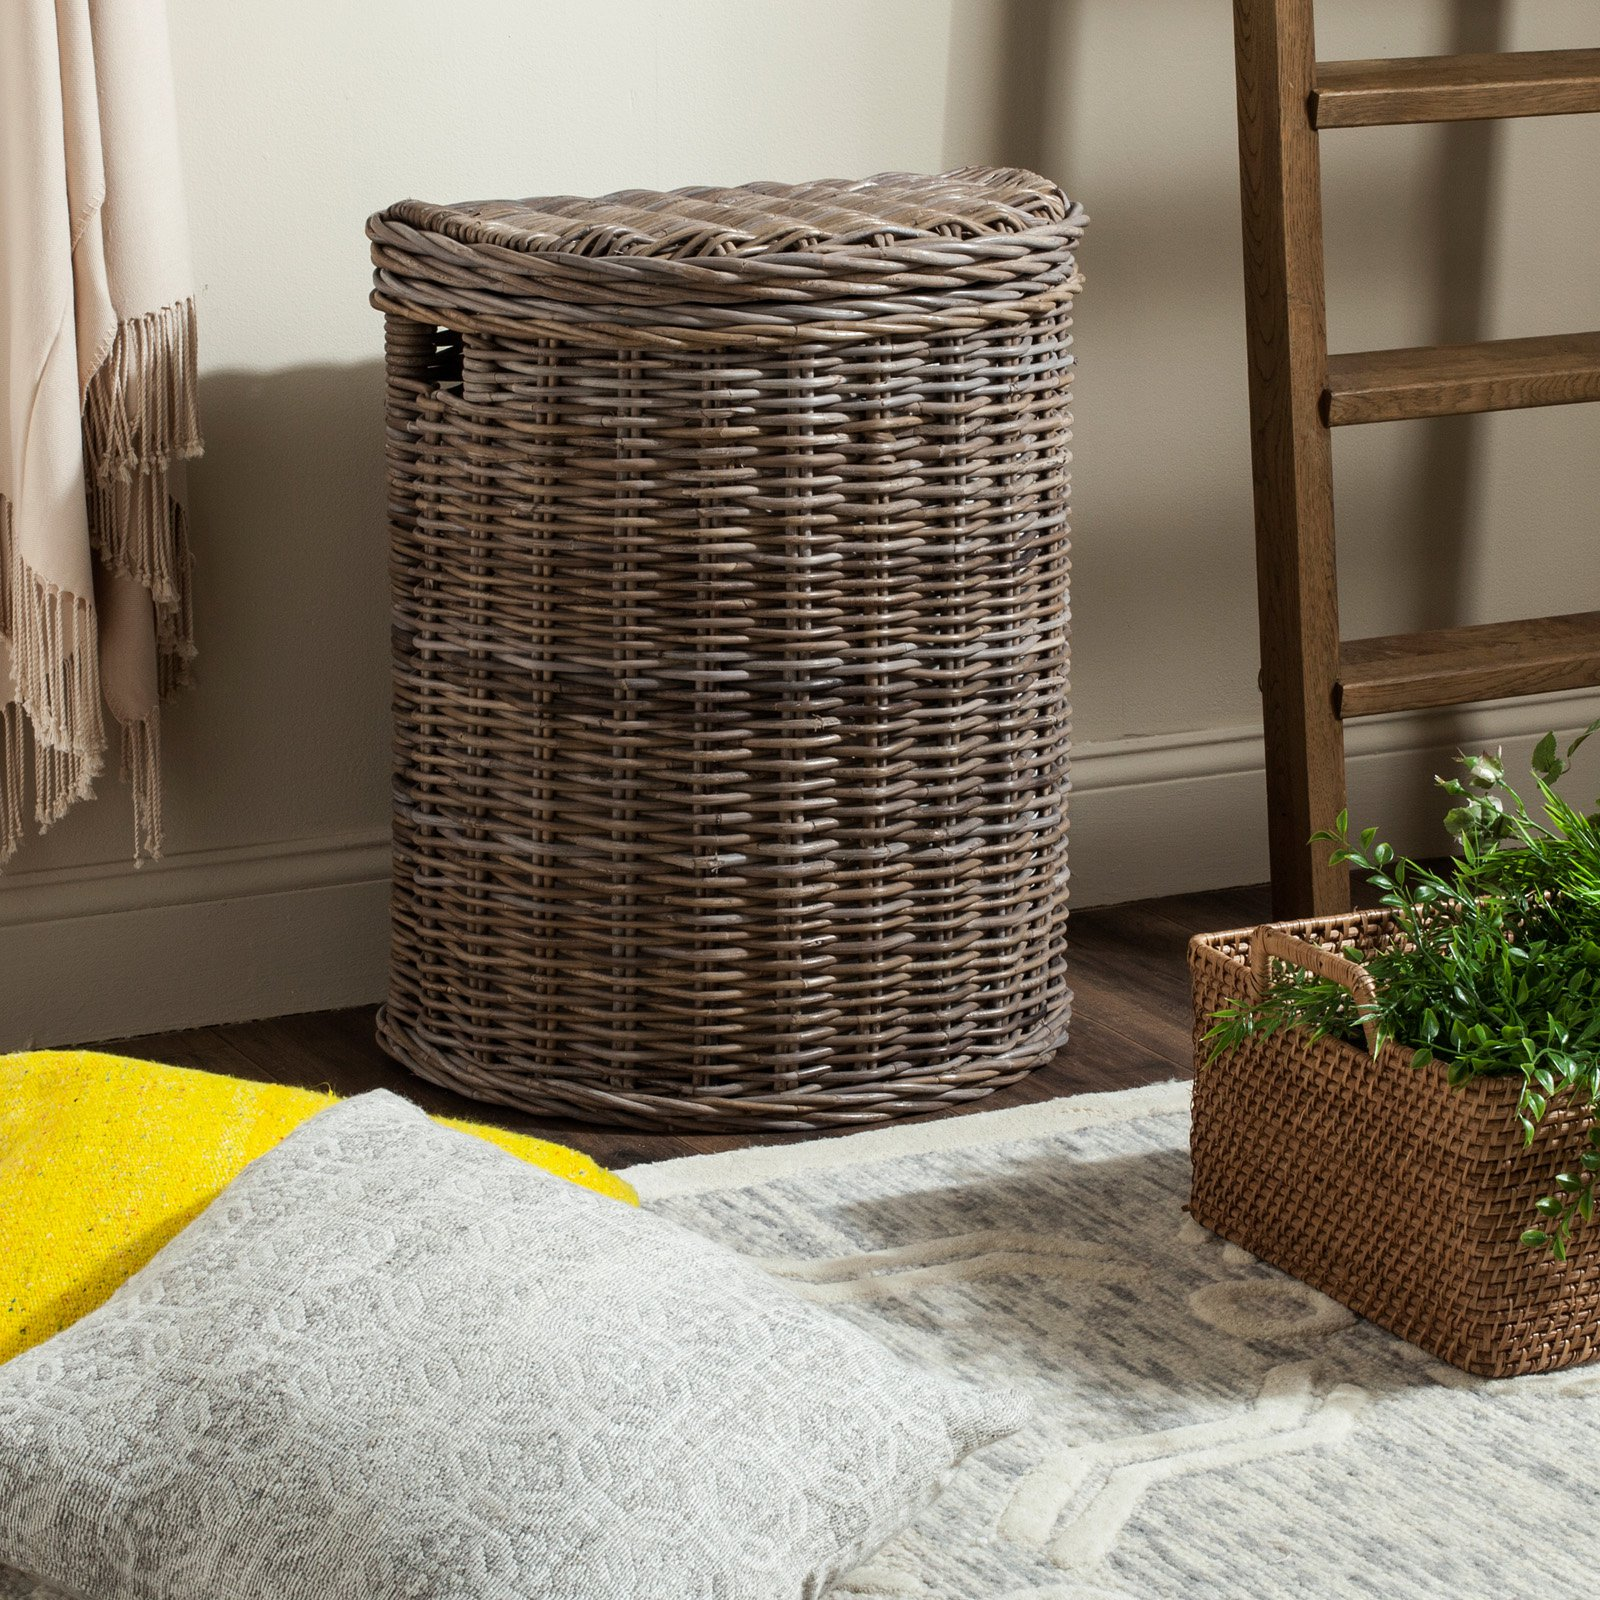 Safavieh Damari Wicker Laundry Hamper